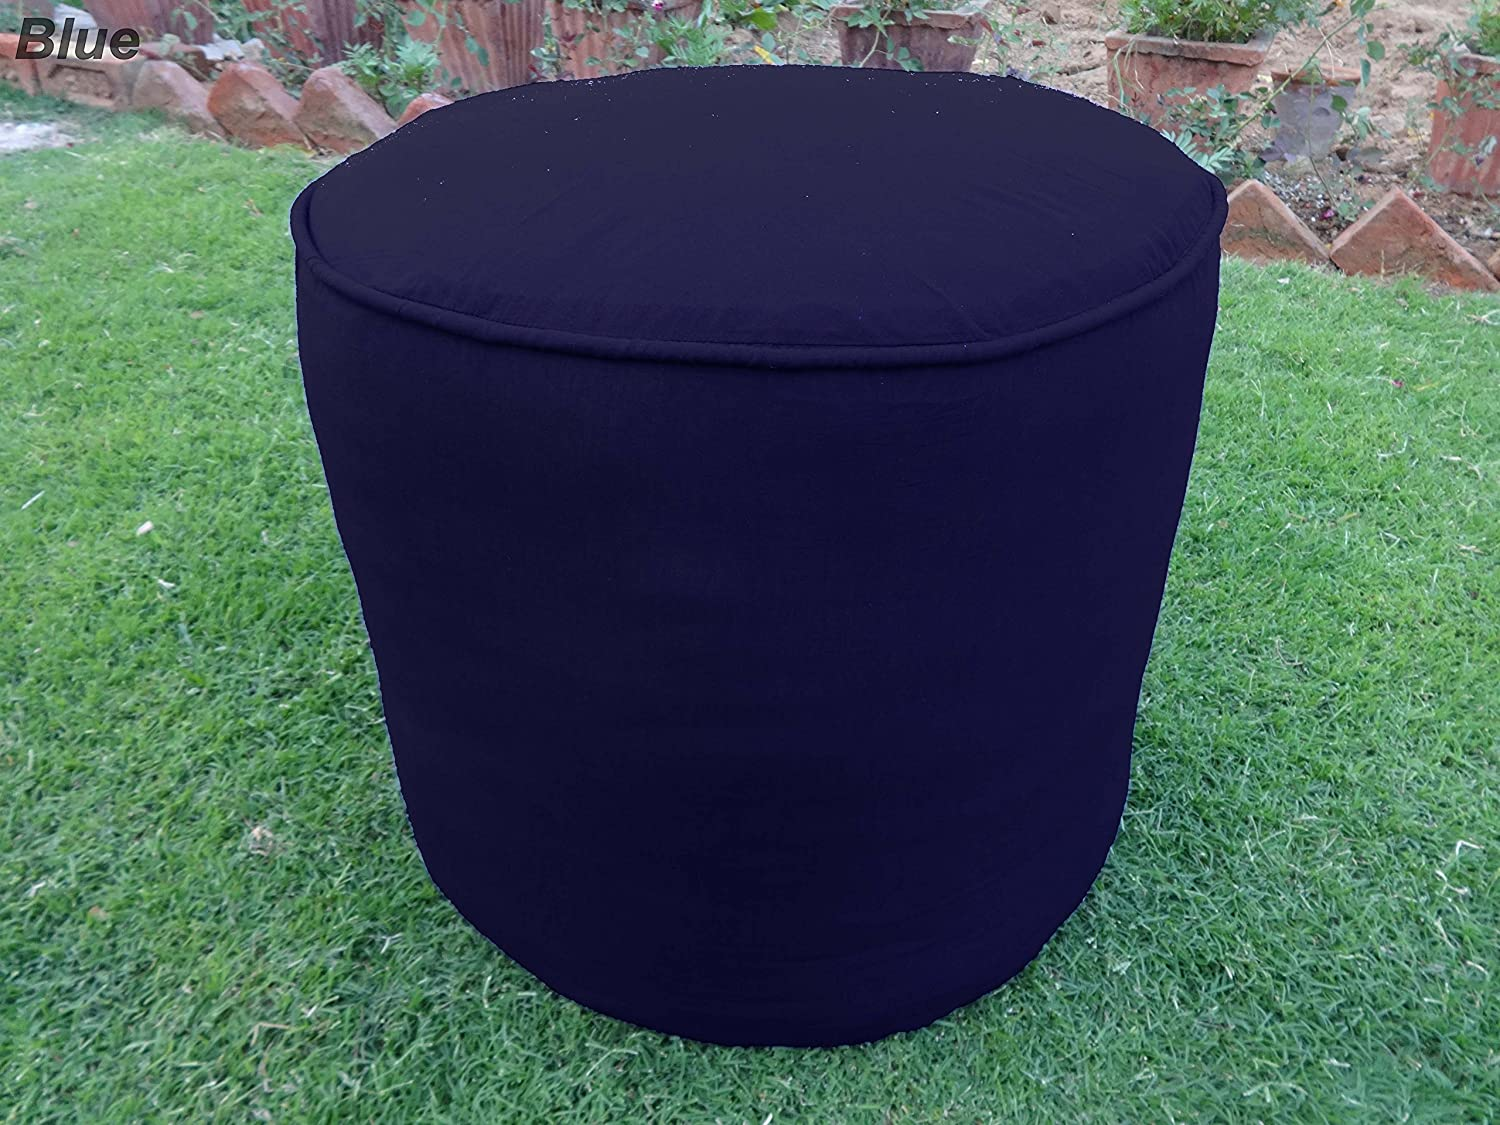 Indianapolis Mall Saffron 100% Cotton Challenge the lowest price Plain Piping Round Ottoman Cover Pouf Throw